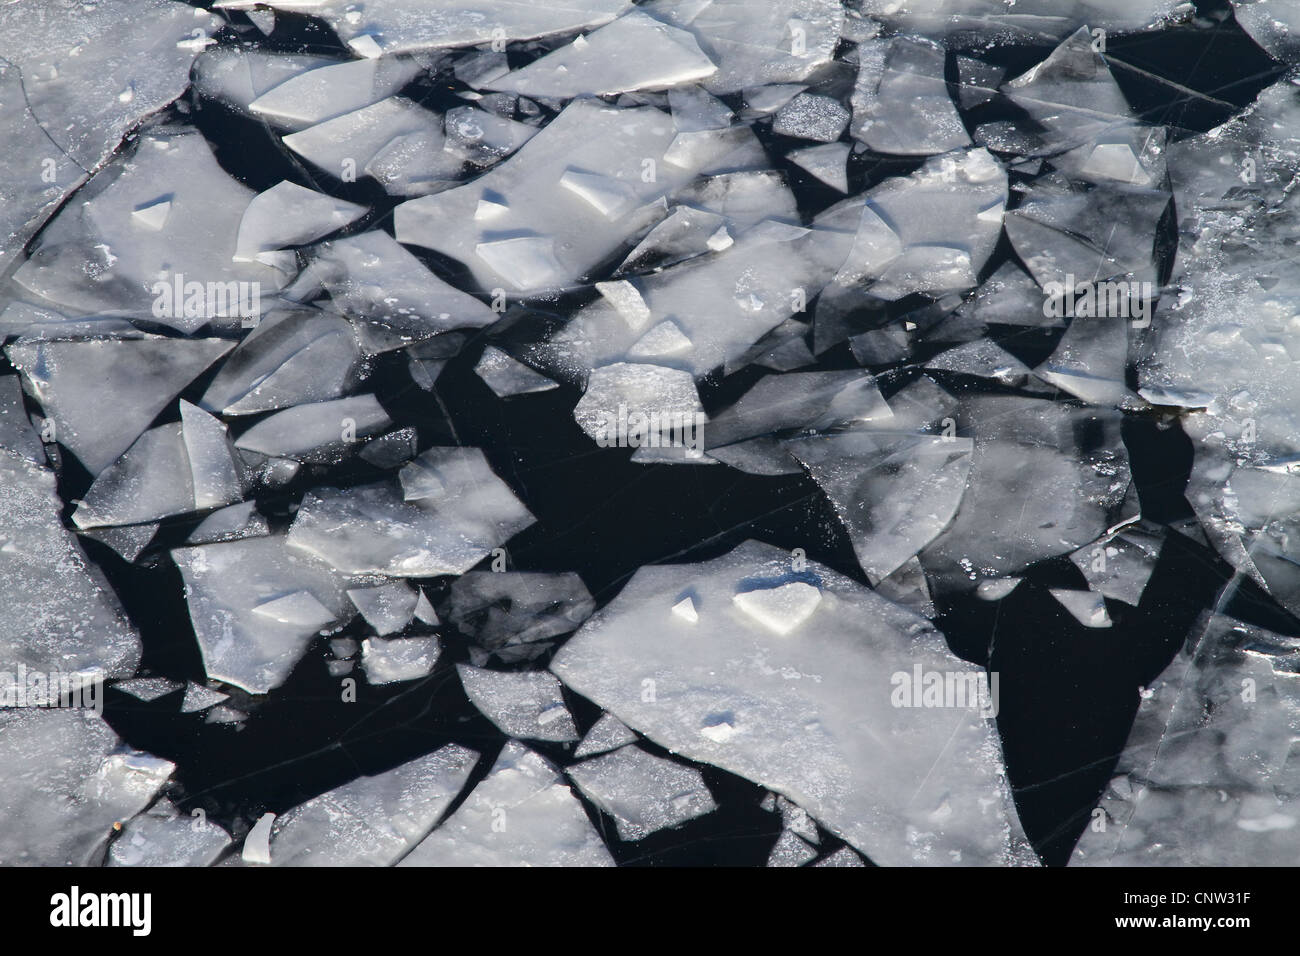 frozen river with chunks of ice - Stock Image